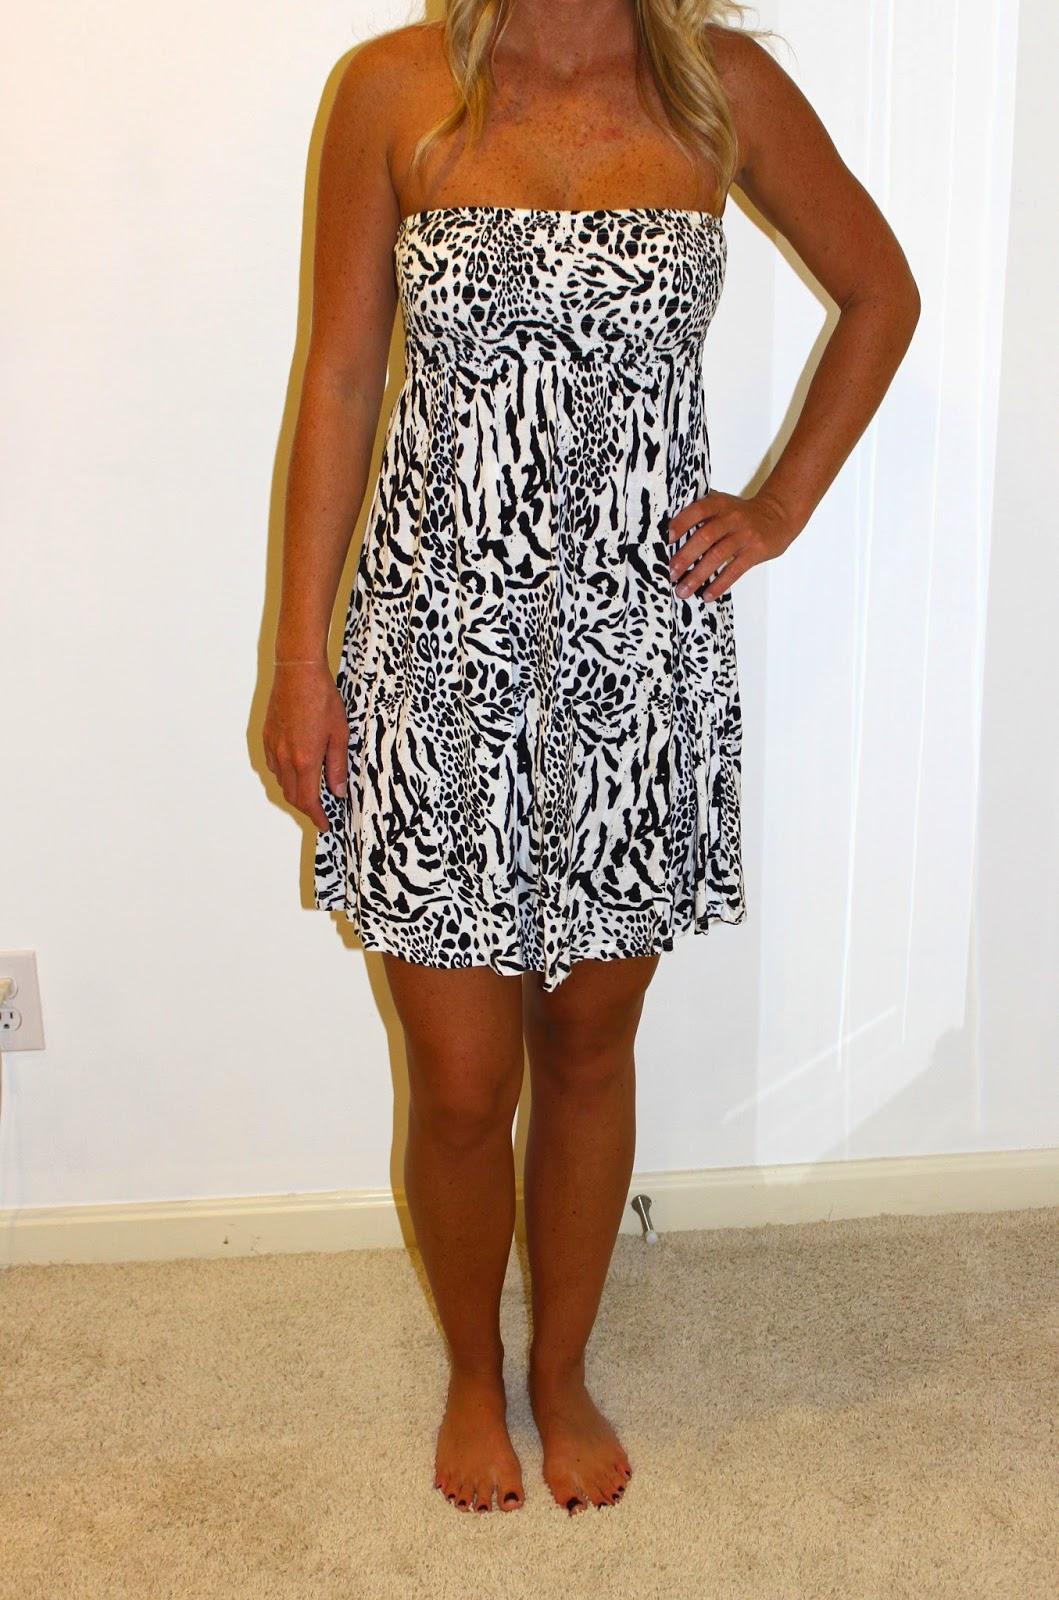 ebay leopard sundress